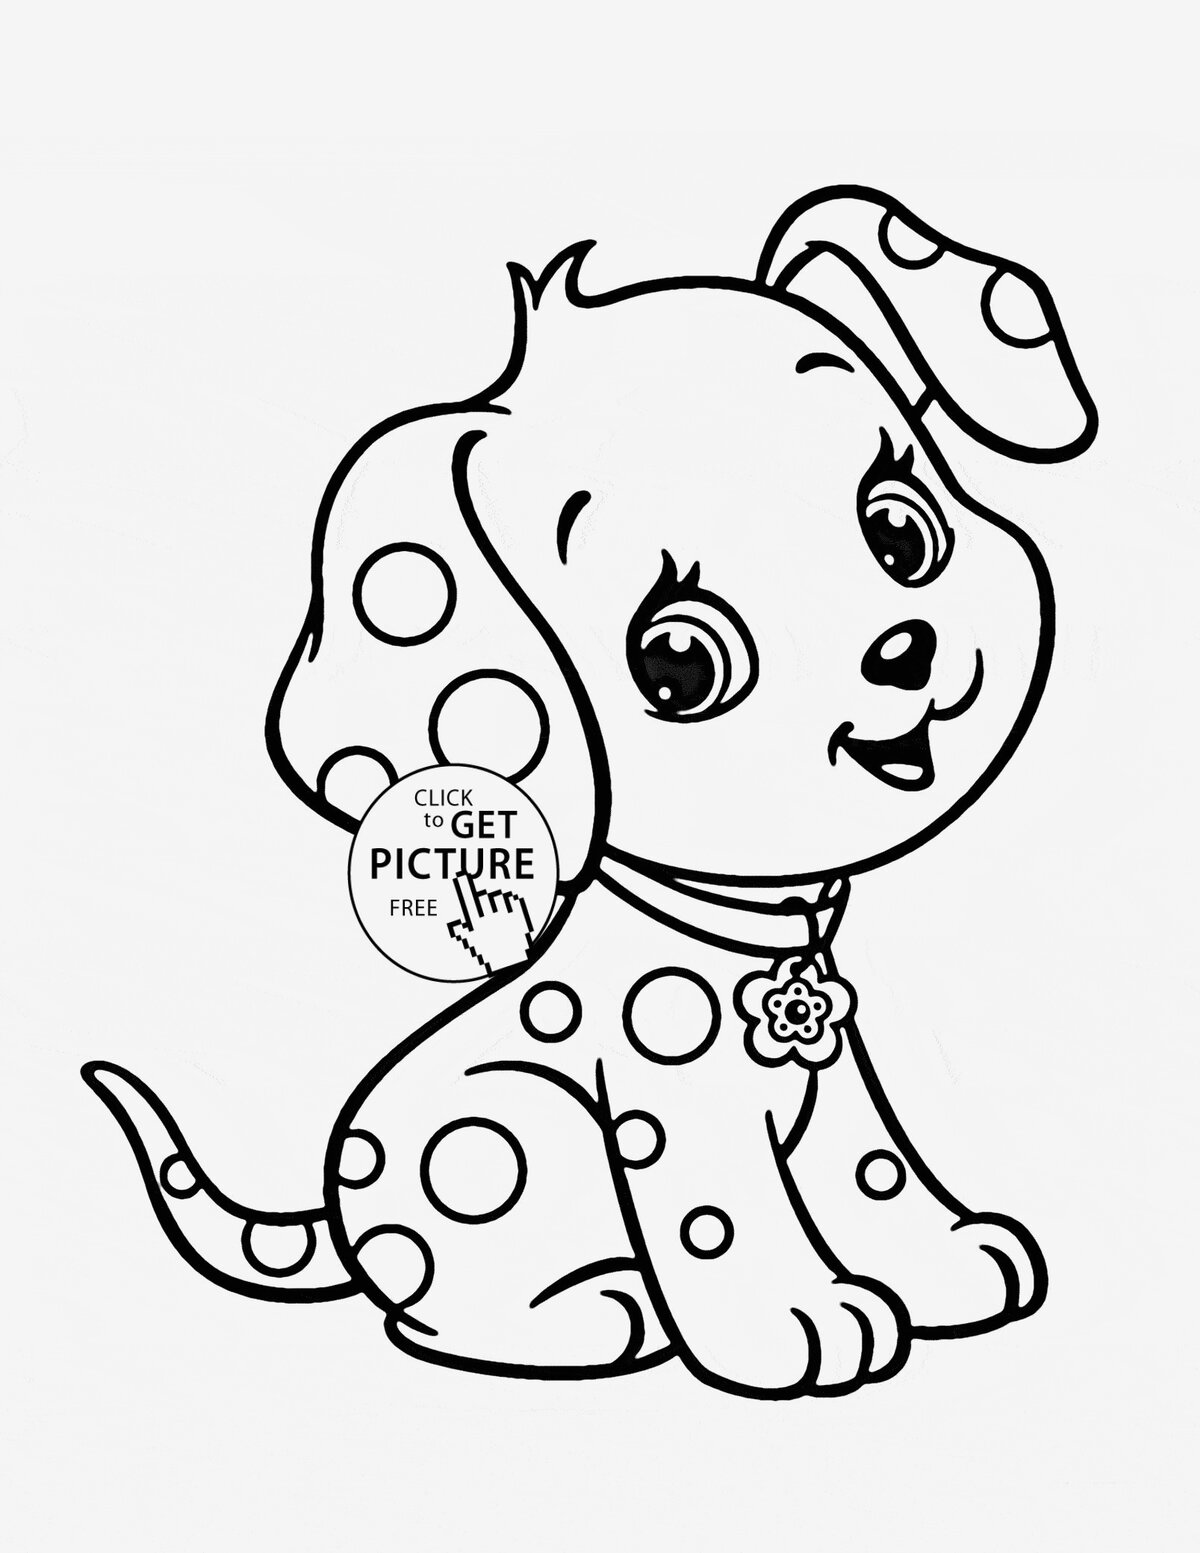 Christmas animals coloring pages printable with funny animal images 3000 inspirational quotes best printable coloring page